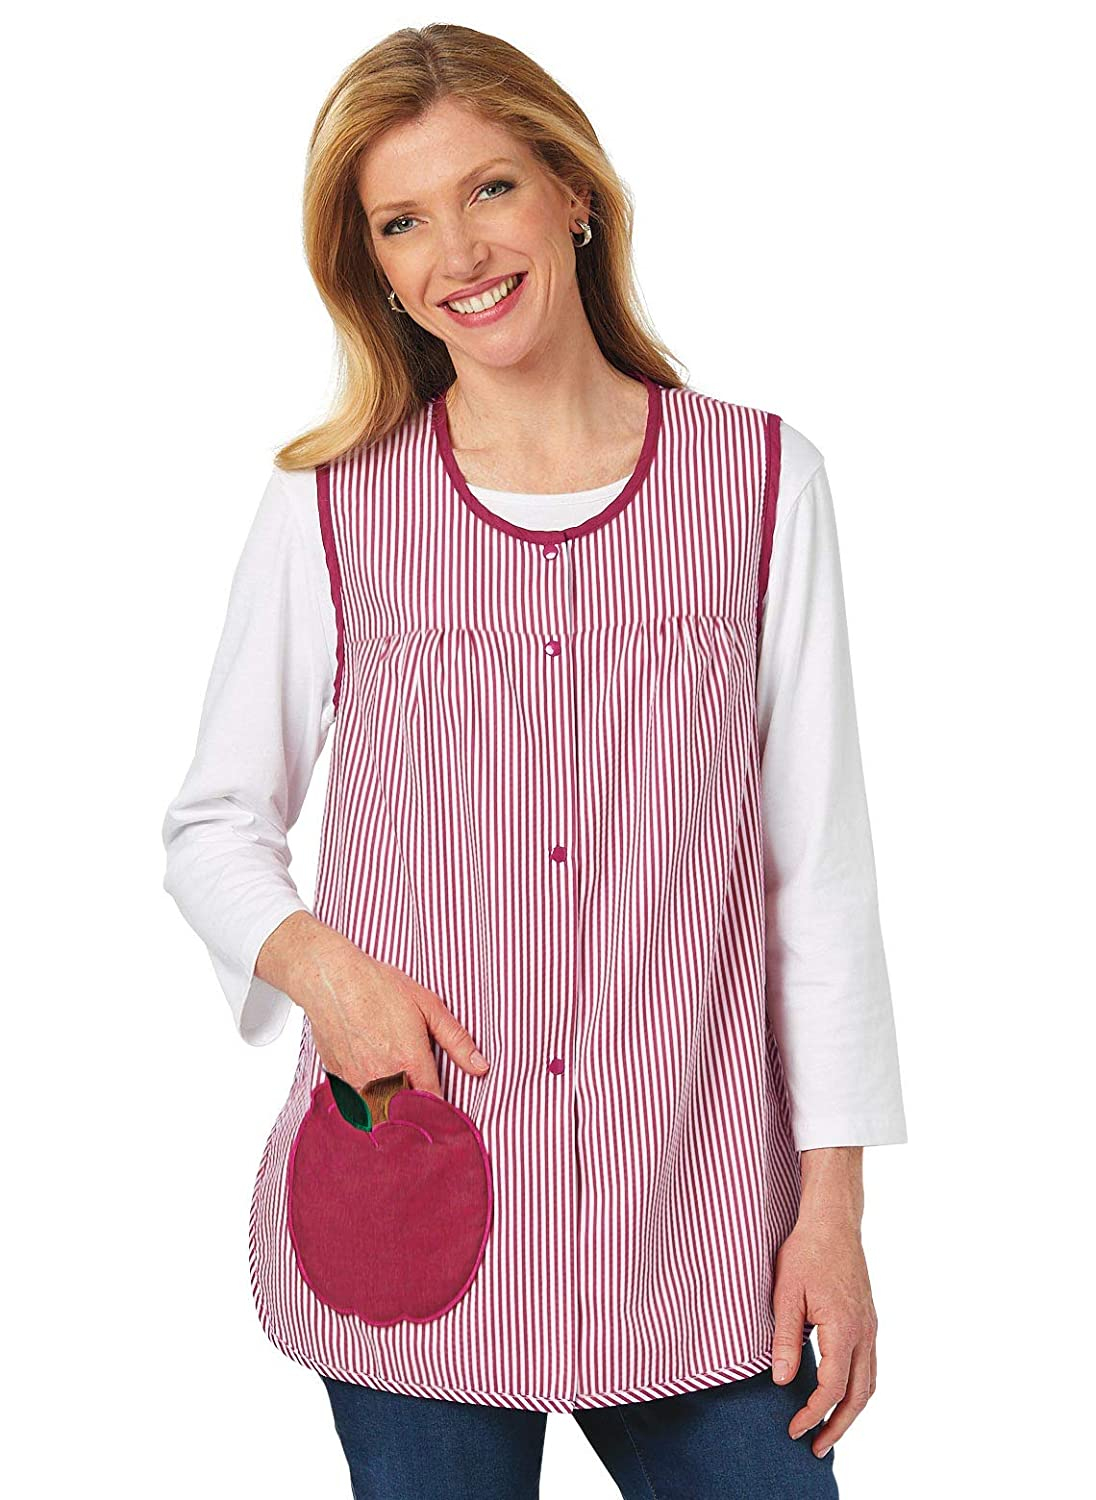 Color Leaves Cobbler Smock Apron Craft Apron for Adults with Pockets Size Small Size Small Carol Wright Gifts Cobbler Apron for Women with Pockets Snap Front Leaves